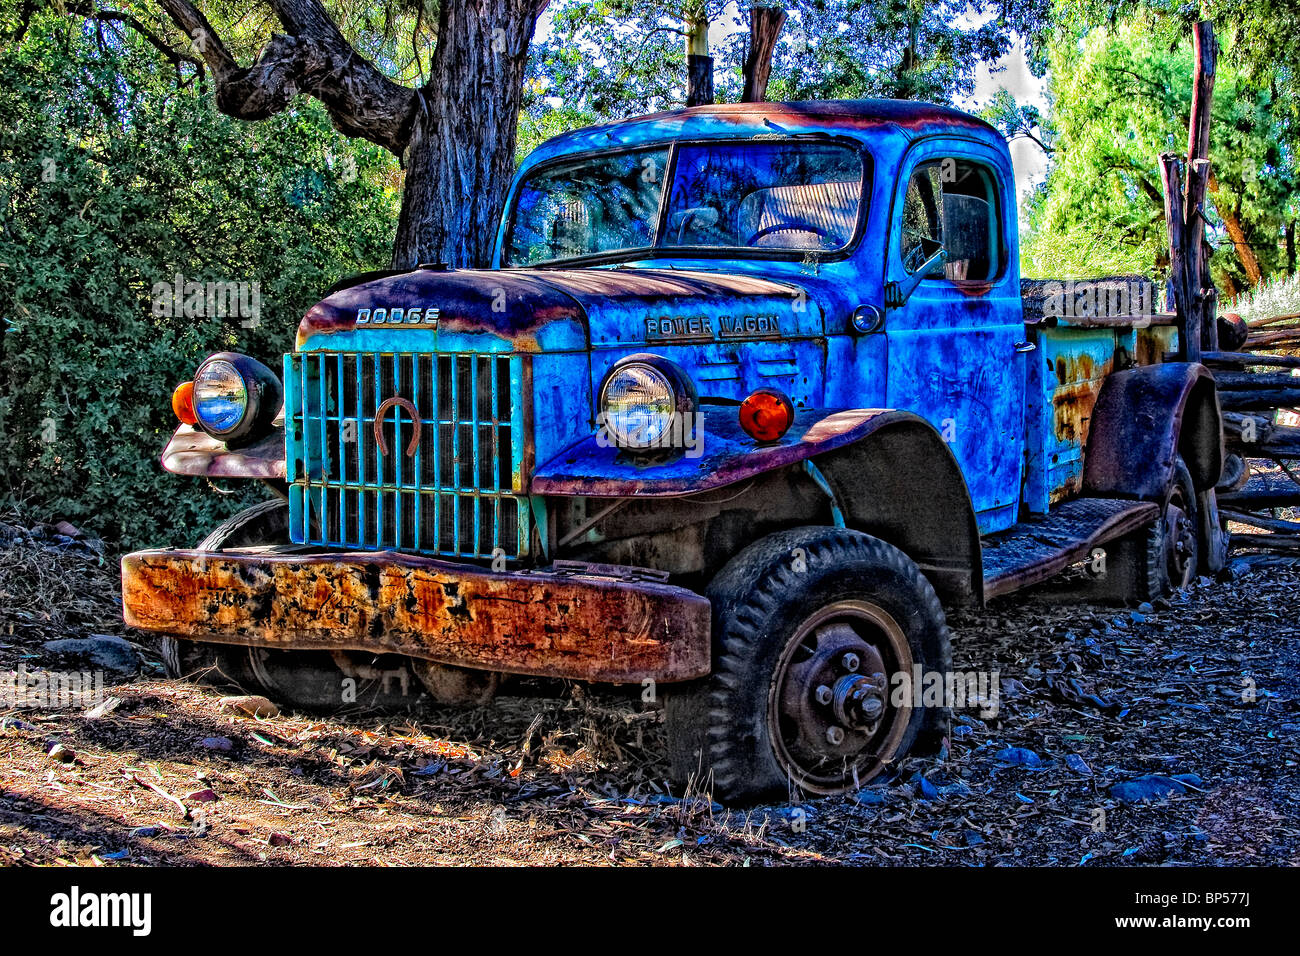 Old 4x4 Dodge Power Wagon Pickup Stock Photo: 30848262 - Alamy